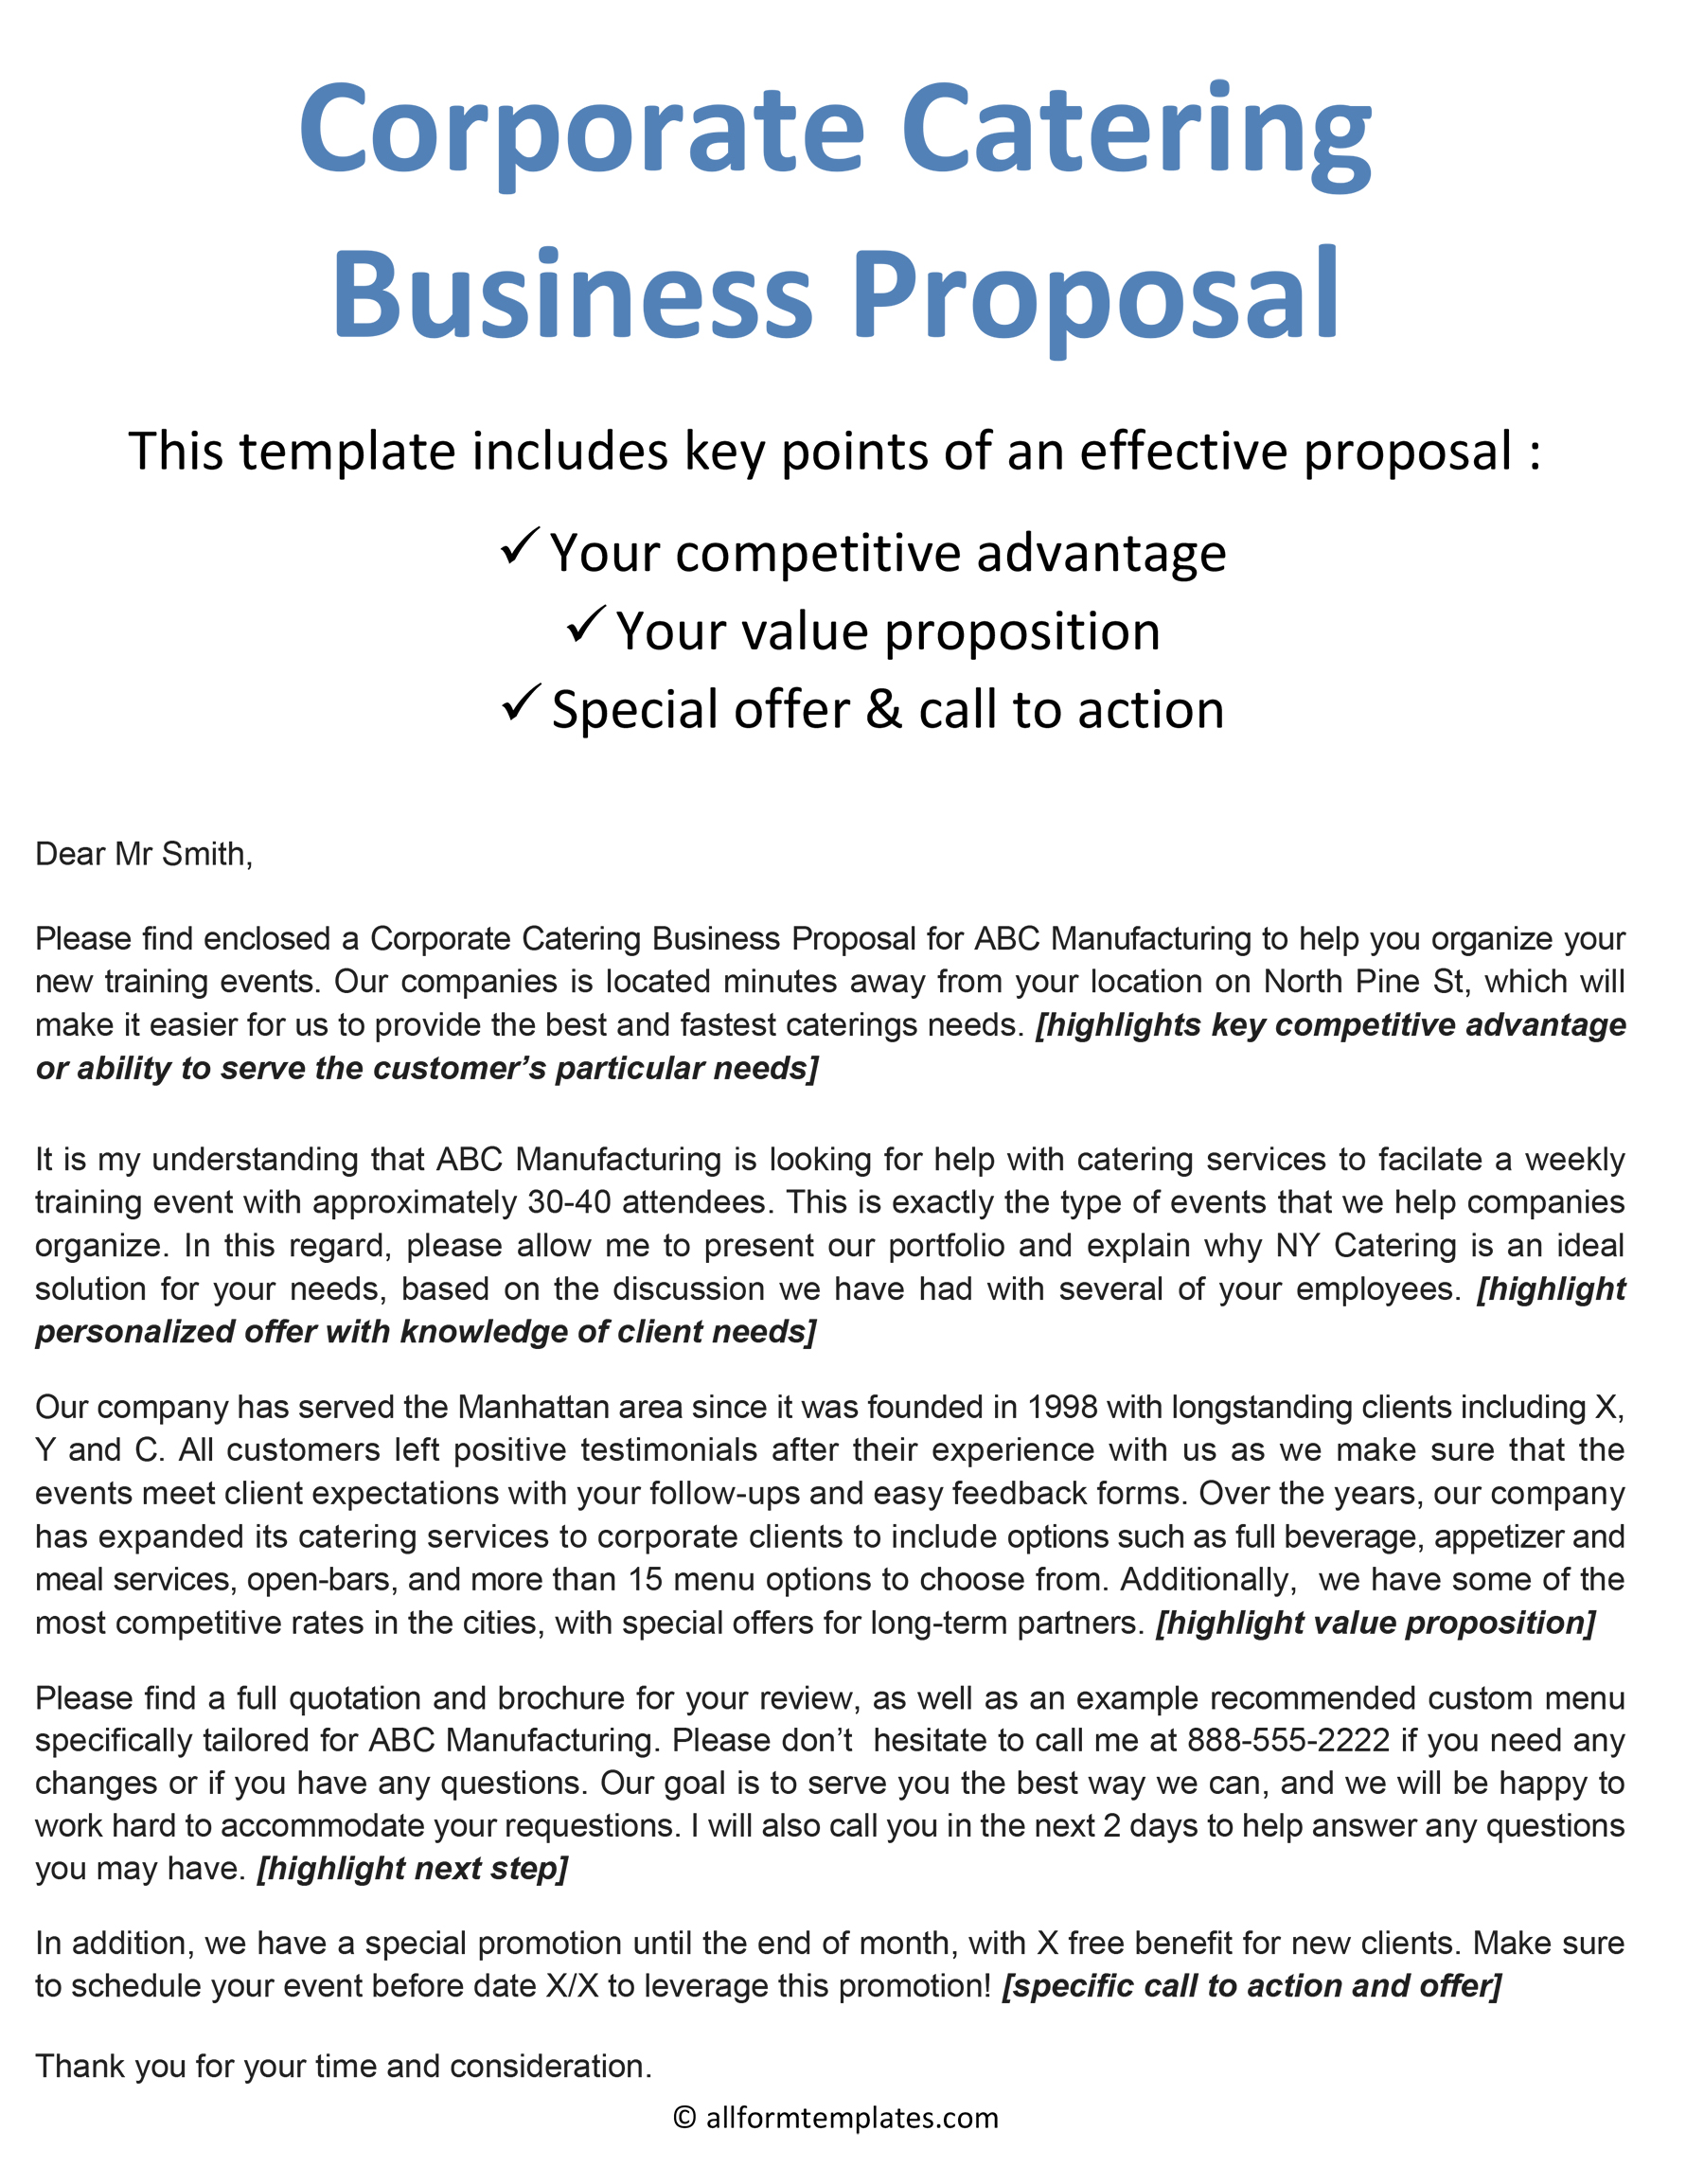 Corporate Catering Business Proposal-NEW-HD